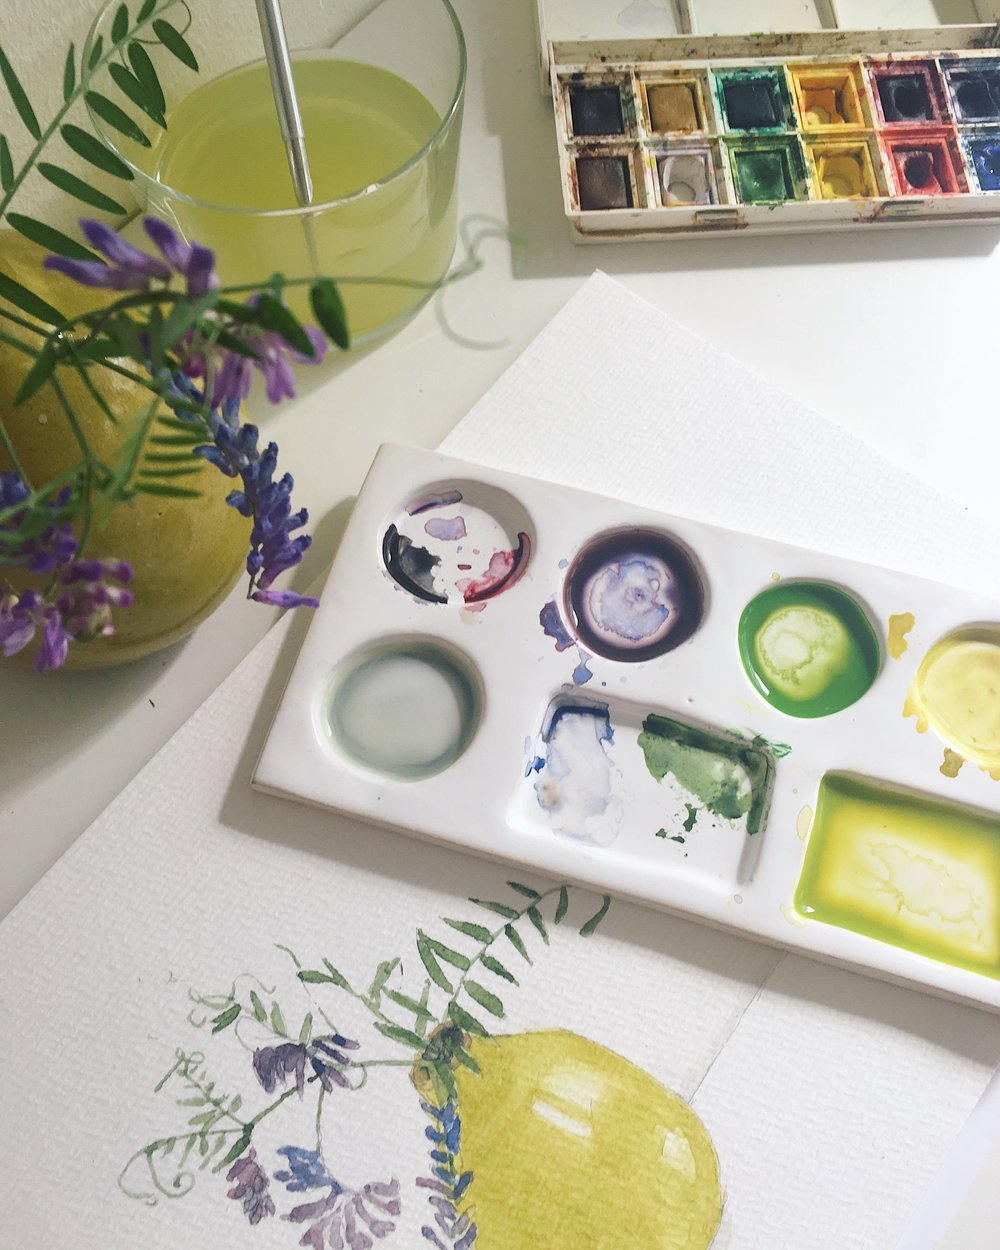 Watercolor illustration and handmade ceramic watercolor tray